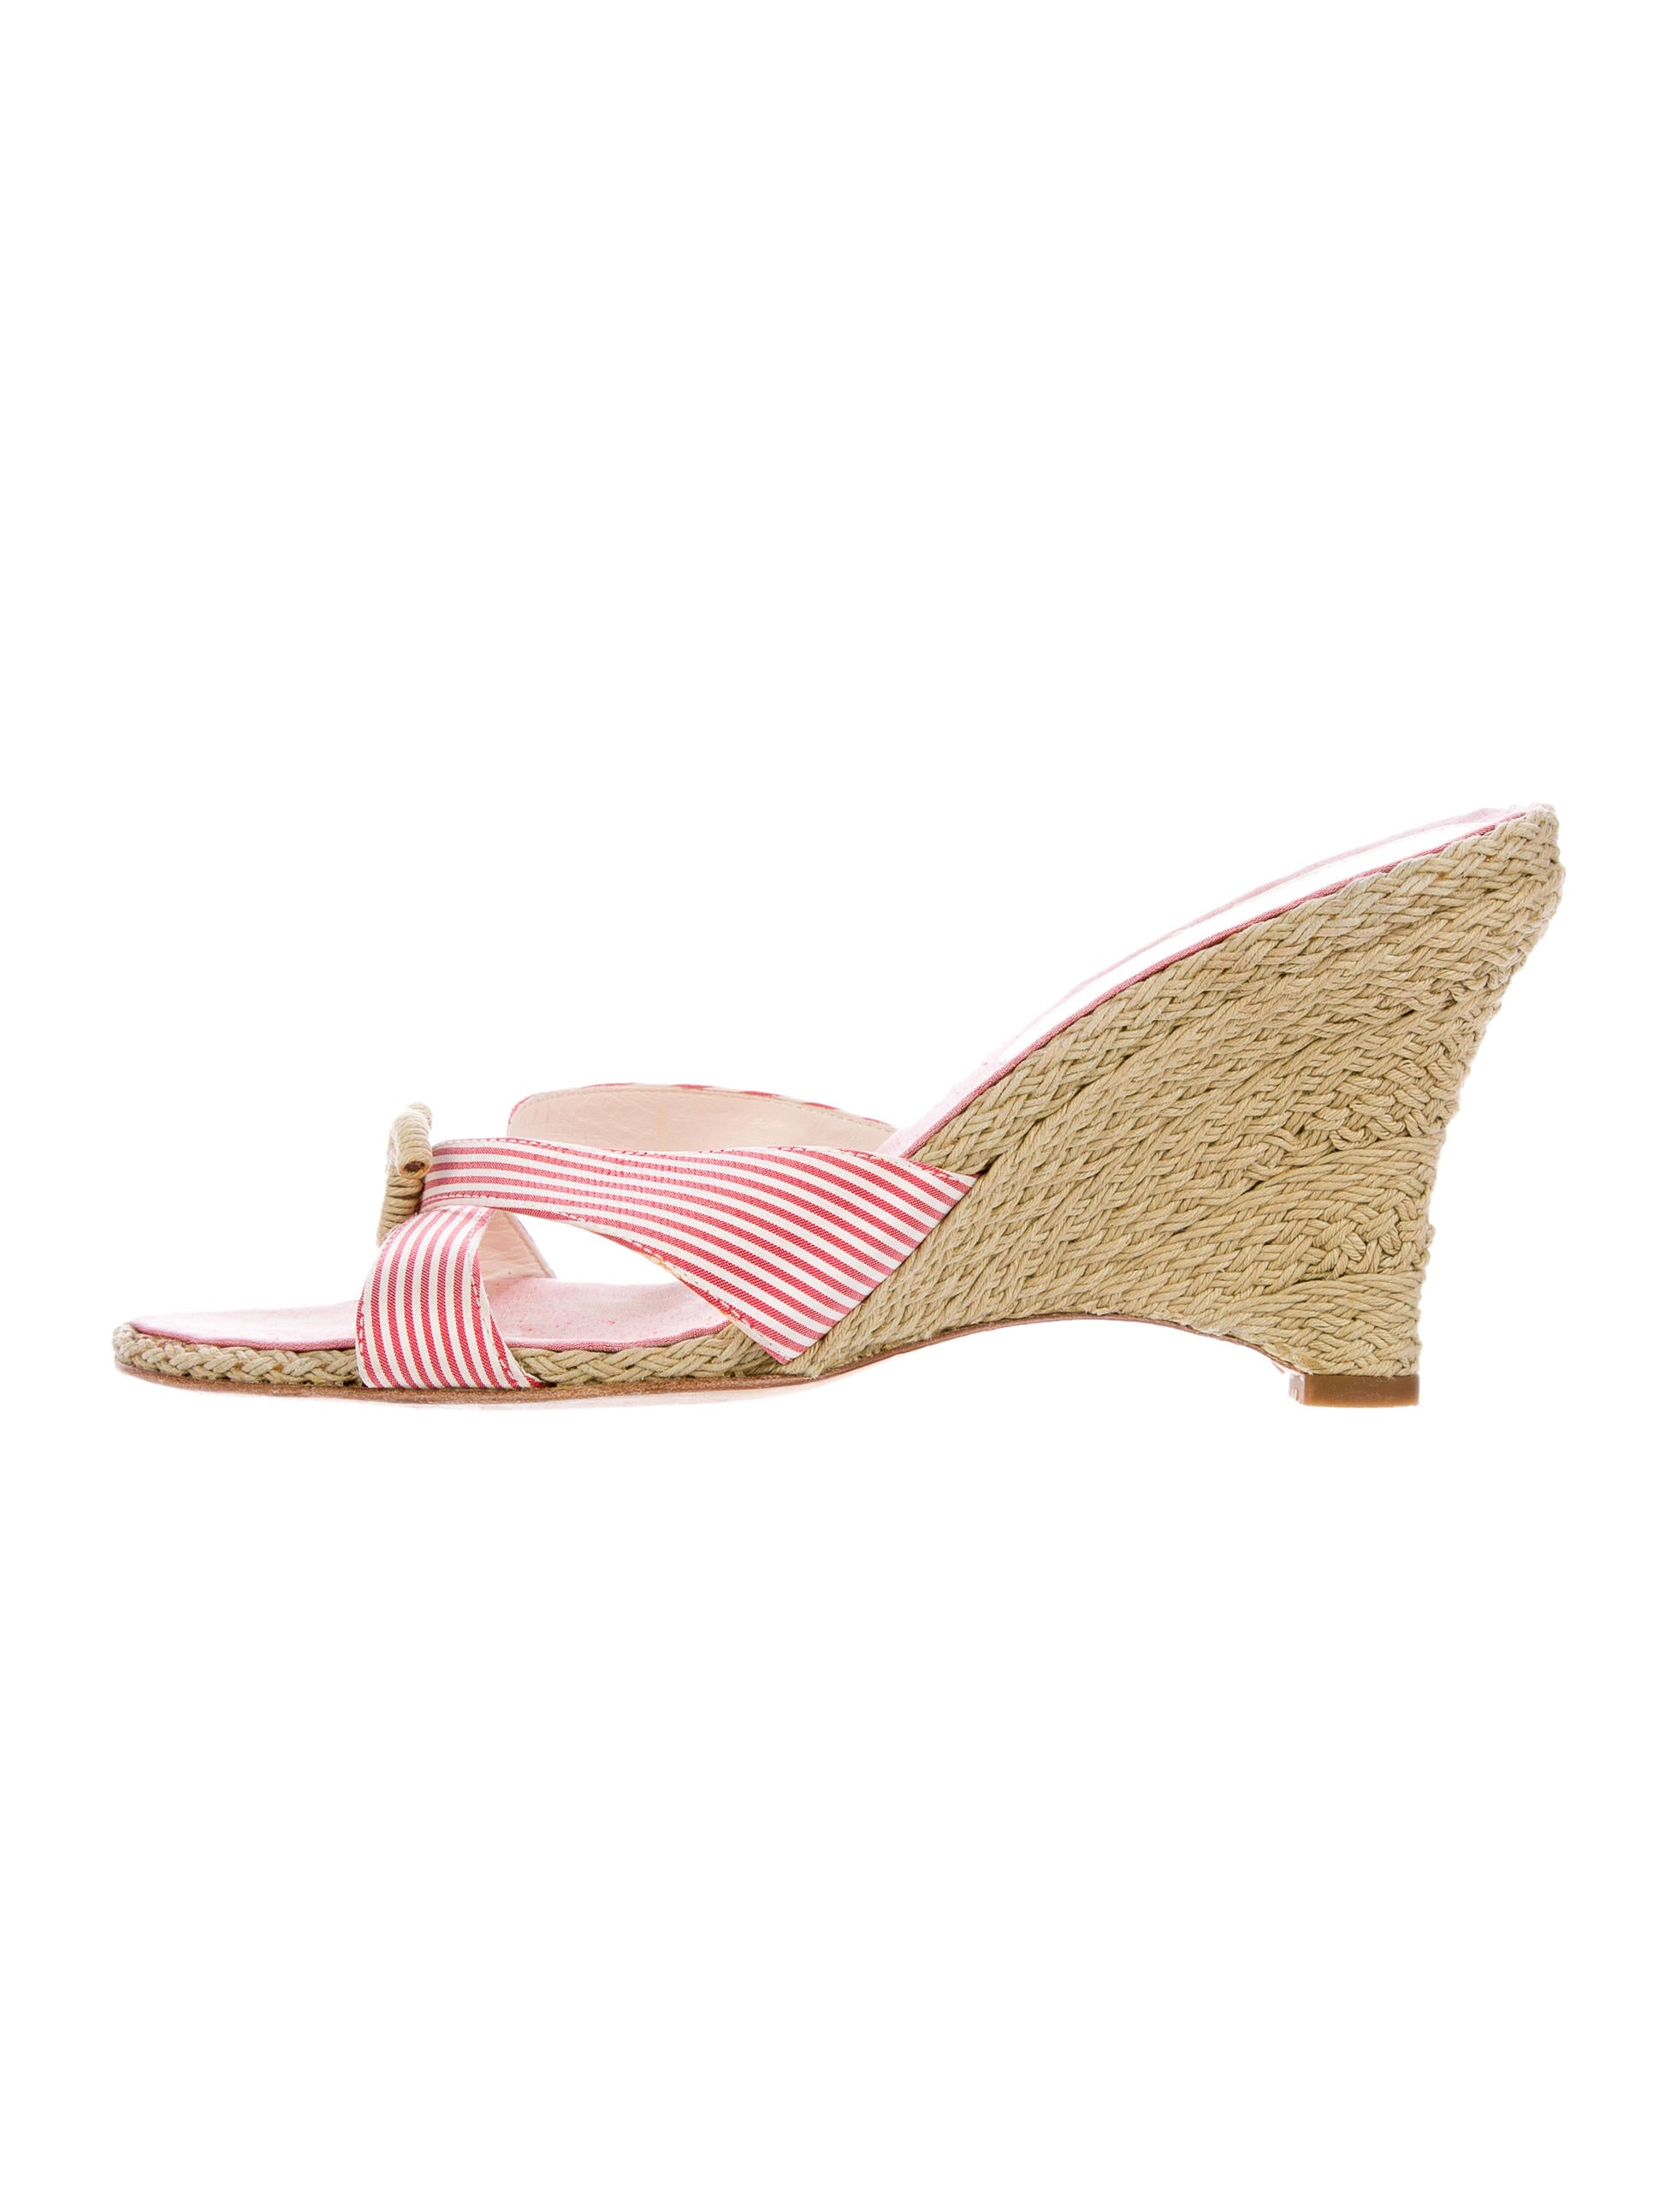 chanel crossover slide wedges shoes cha161713 the